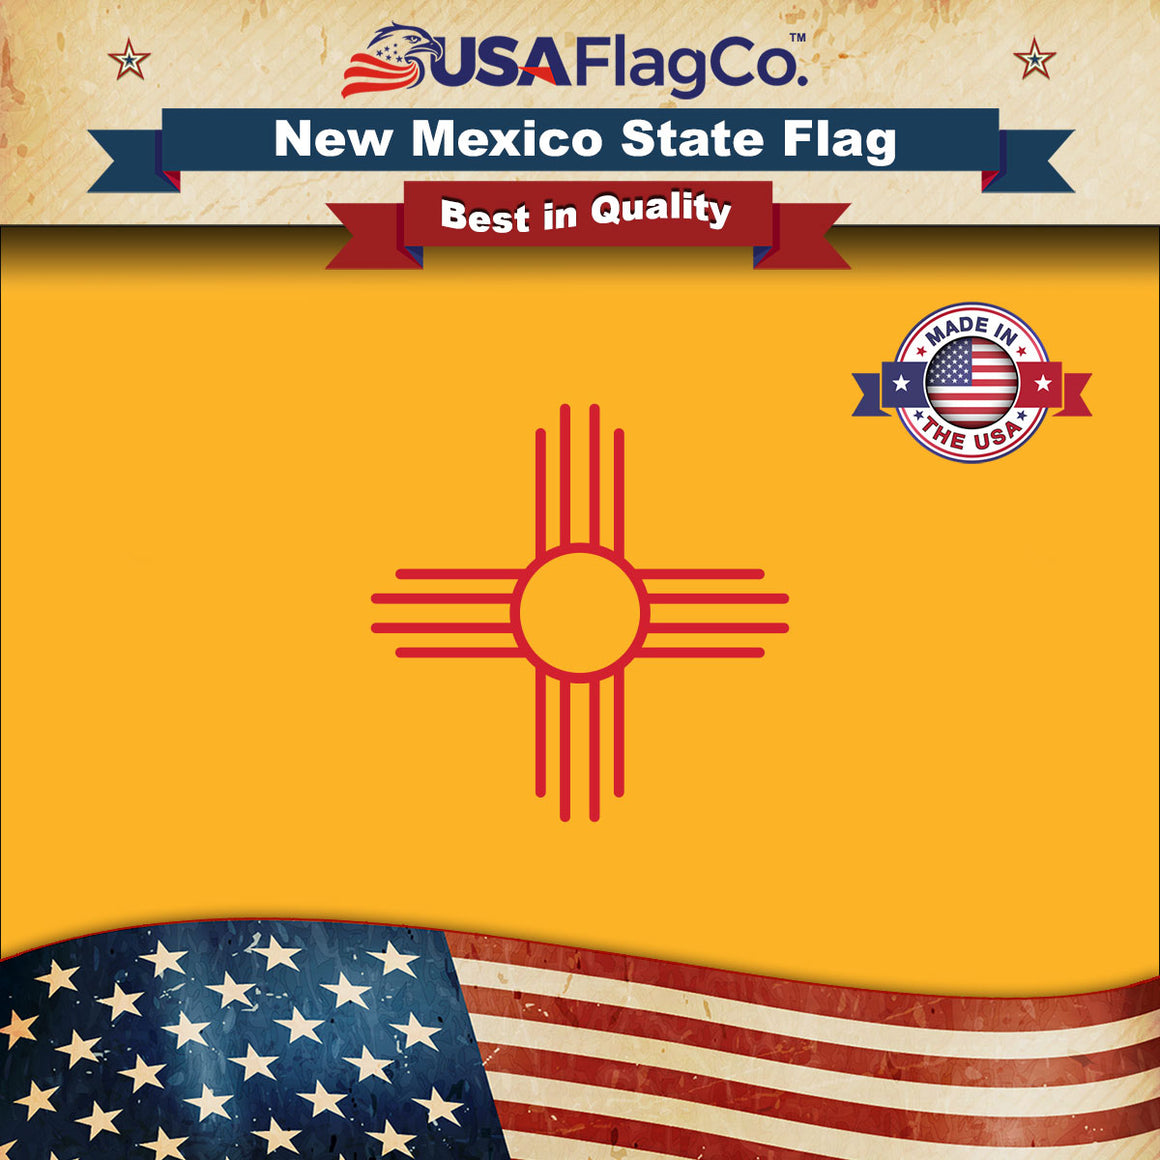 New Mexico Flag by USA Flag Co.